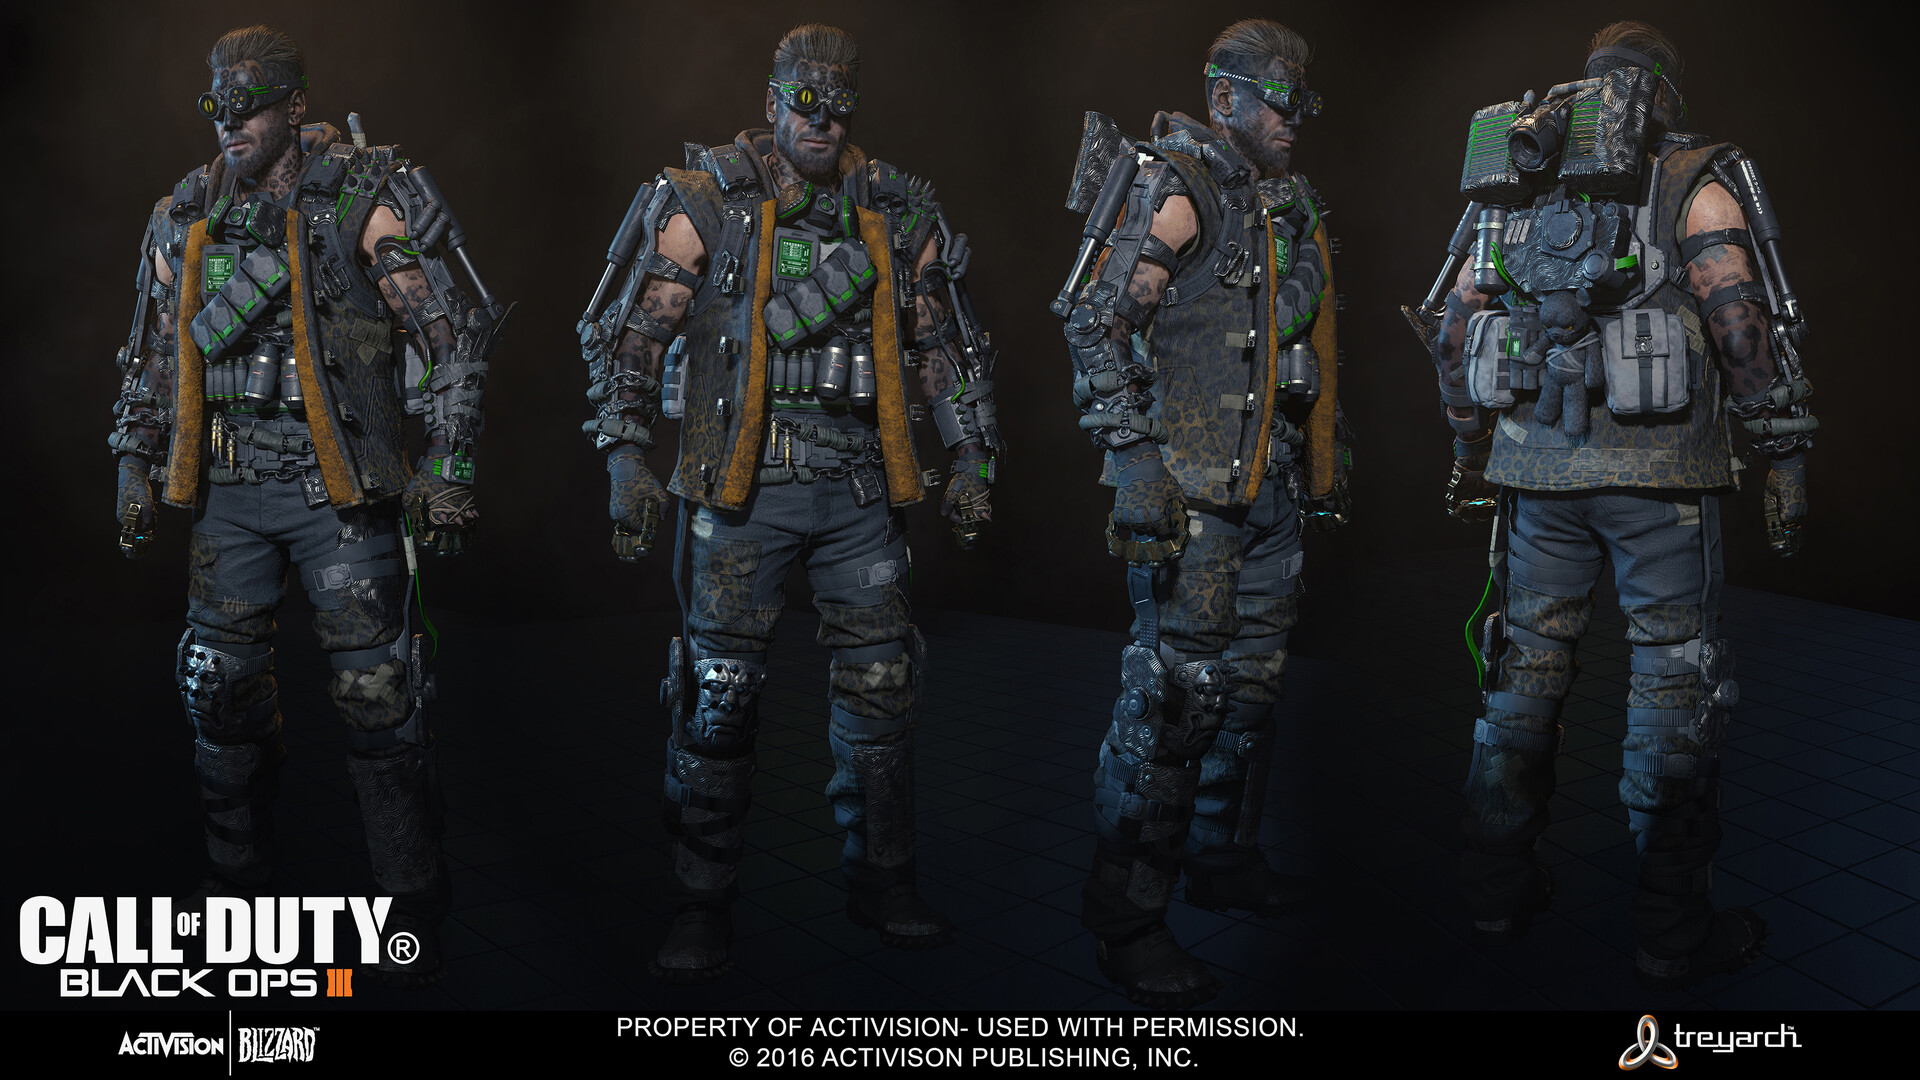 ArtStation - Call of Duty: Black Ops 3 Characters, Brandon Bennett